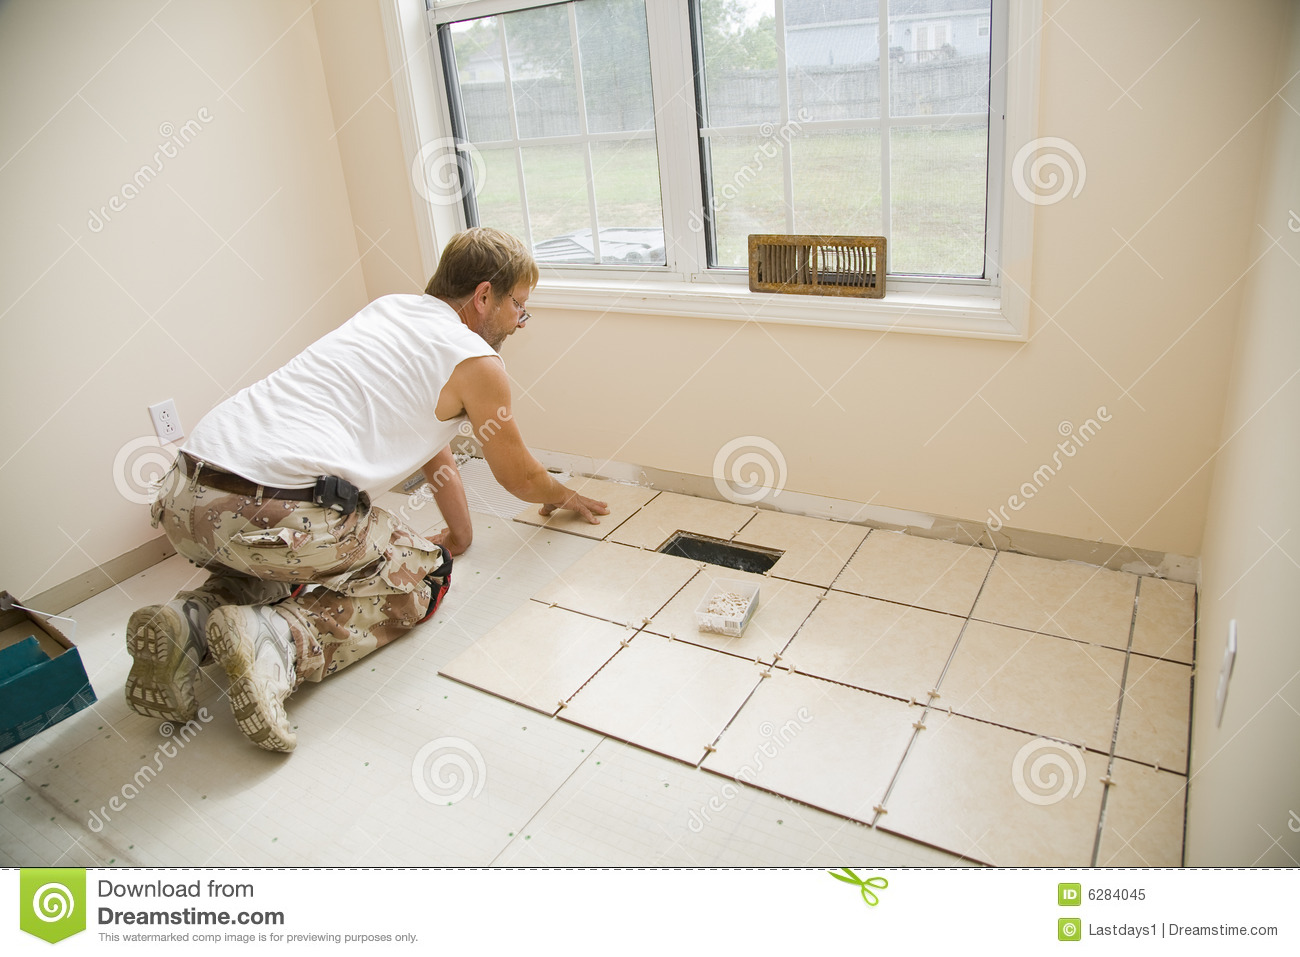 Ceramic tile installer stock image image of kneeling 6284045 man installing ceramic tile in customers kitchen getting ready to sell home dailygadgetfo Gallery